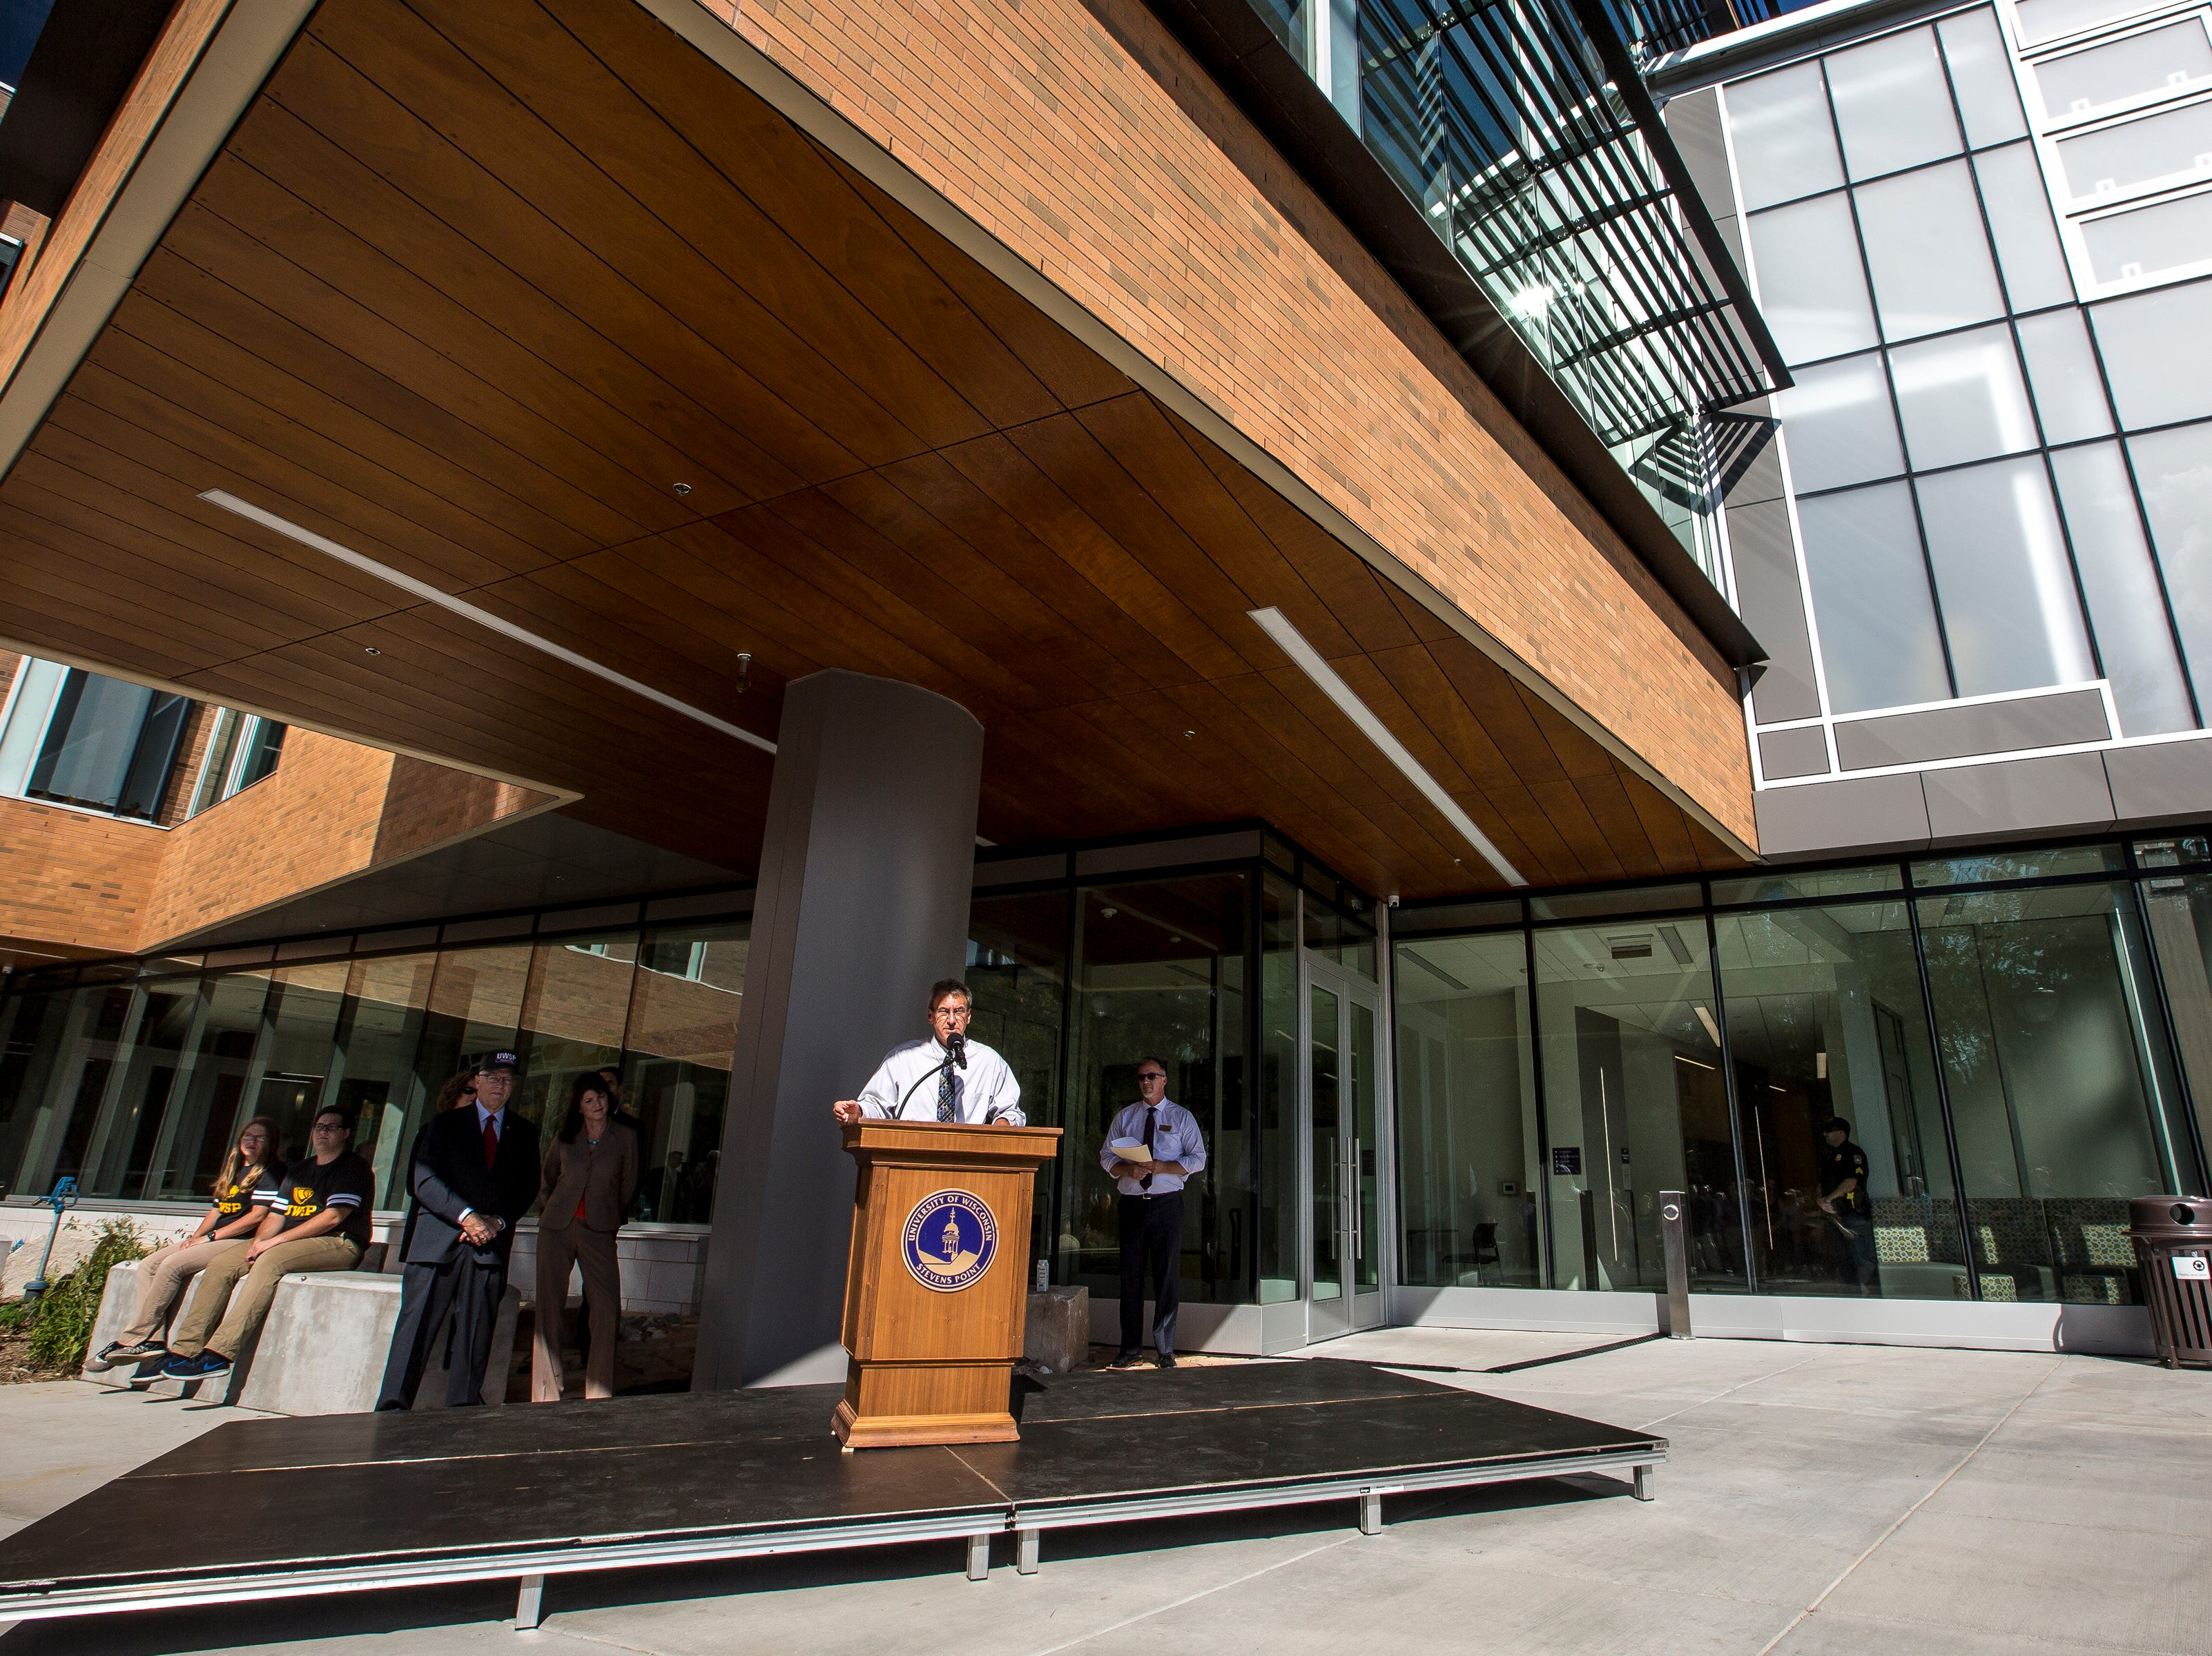 Tim Kippenhan of Miron Construction speaks during the opening ceremony for the Chemistry Biology Building at the University of Wisconsin-Stevens Point in Stevens Point, Wis., Sept. 14, 2018.